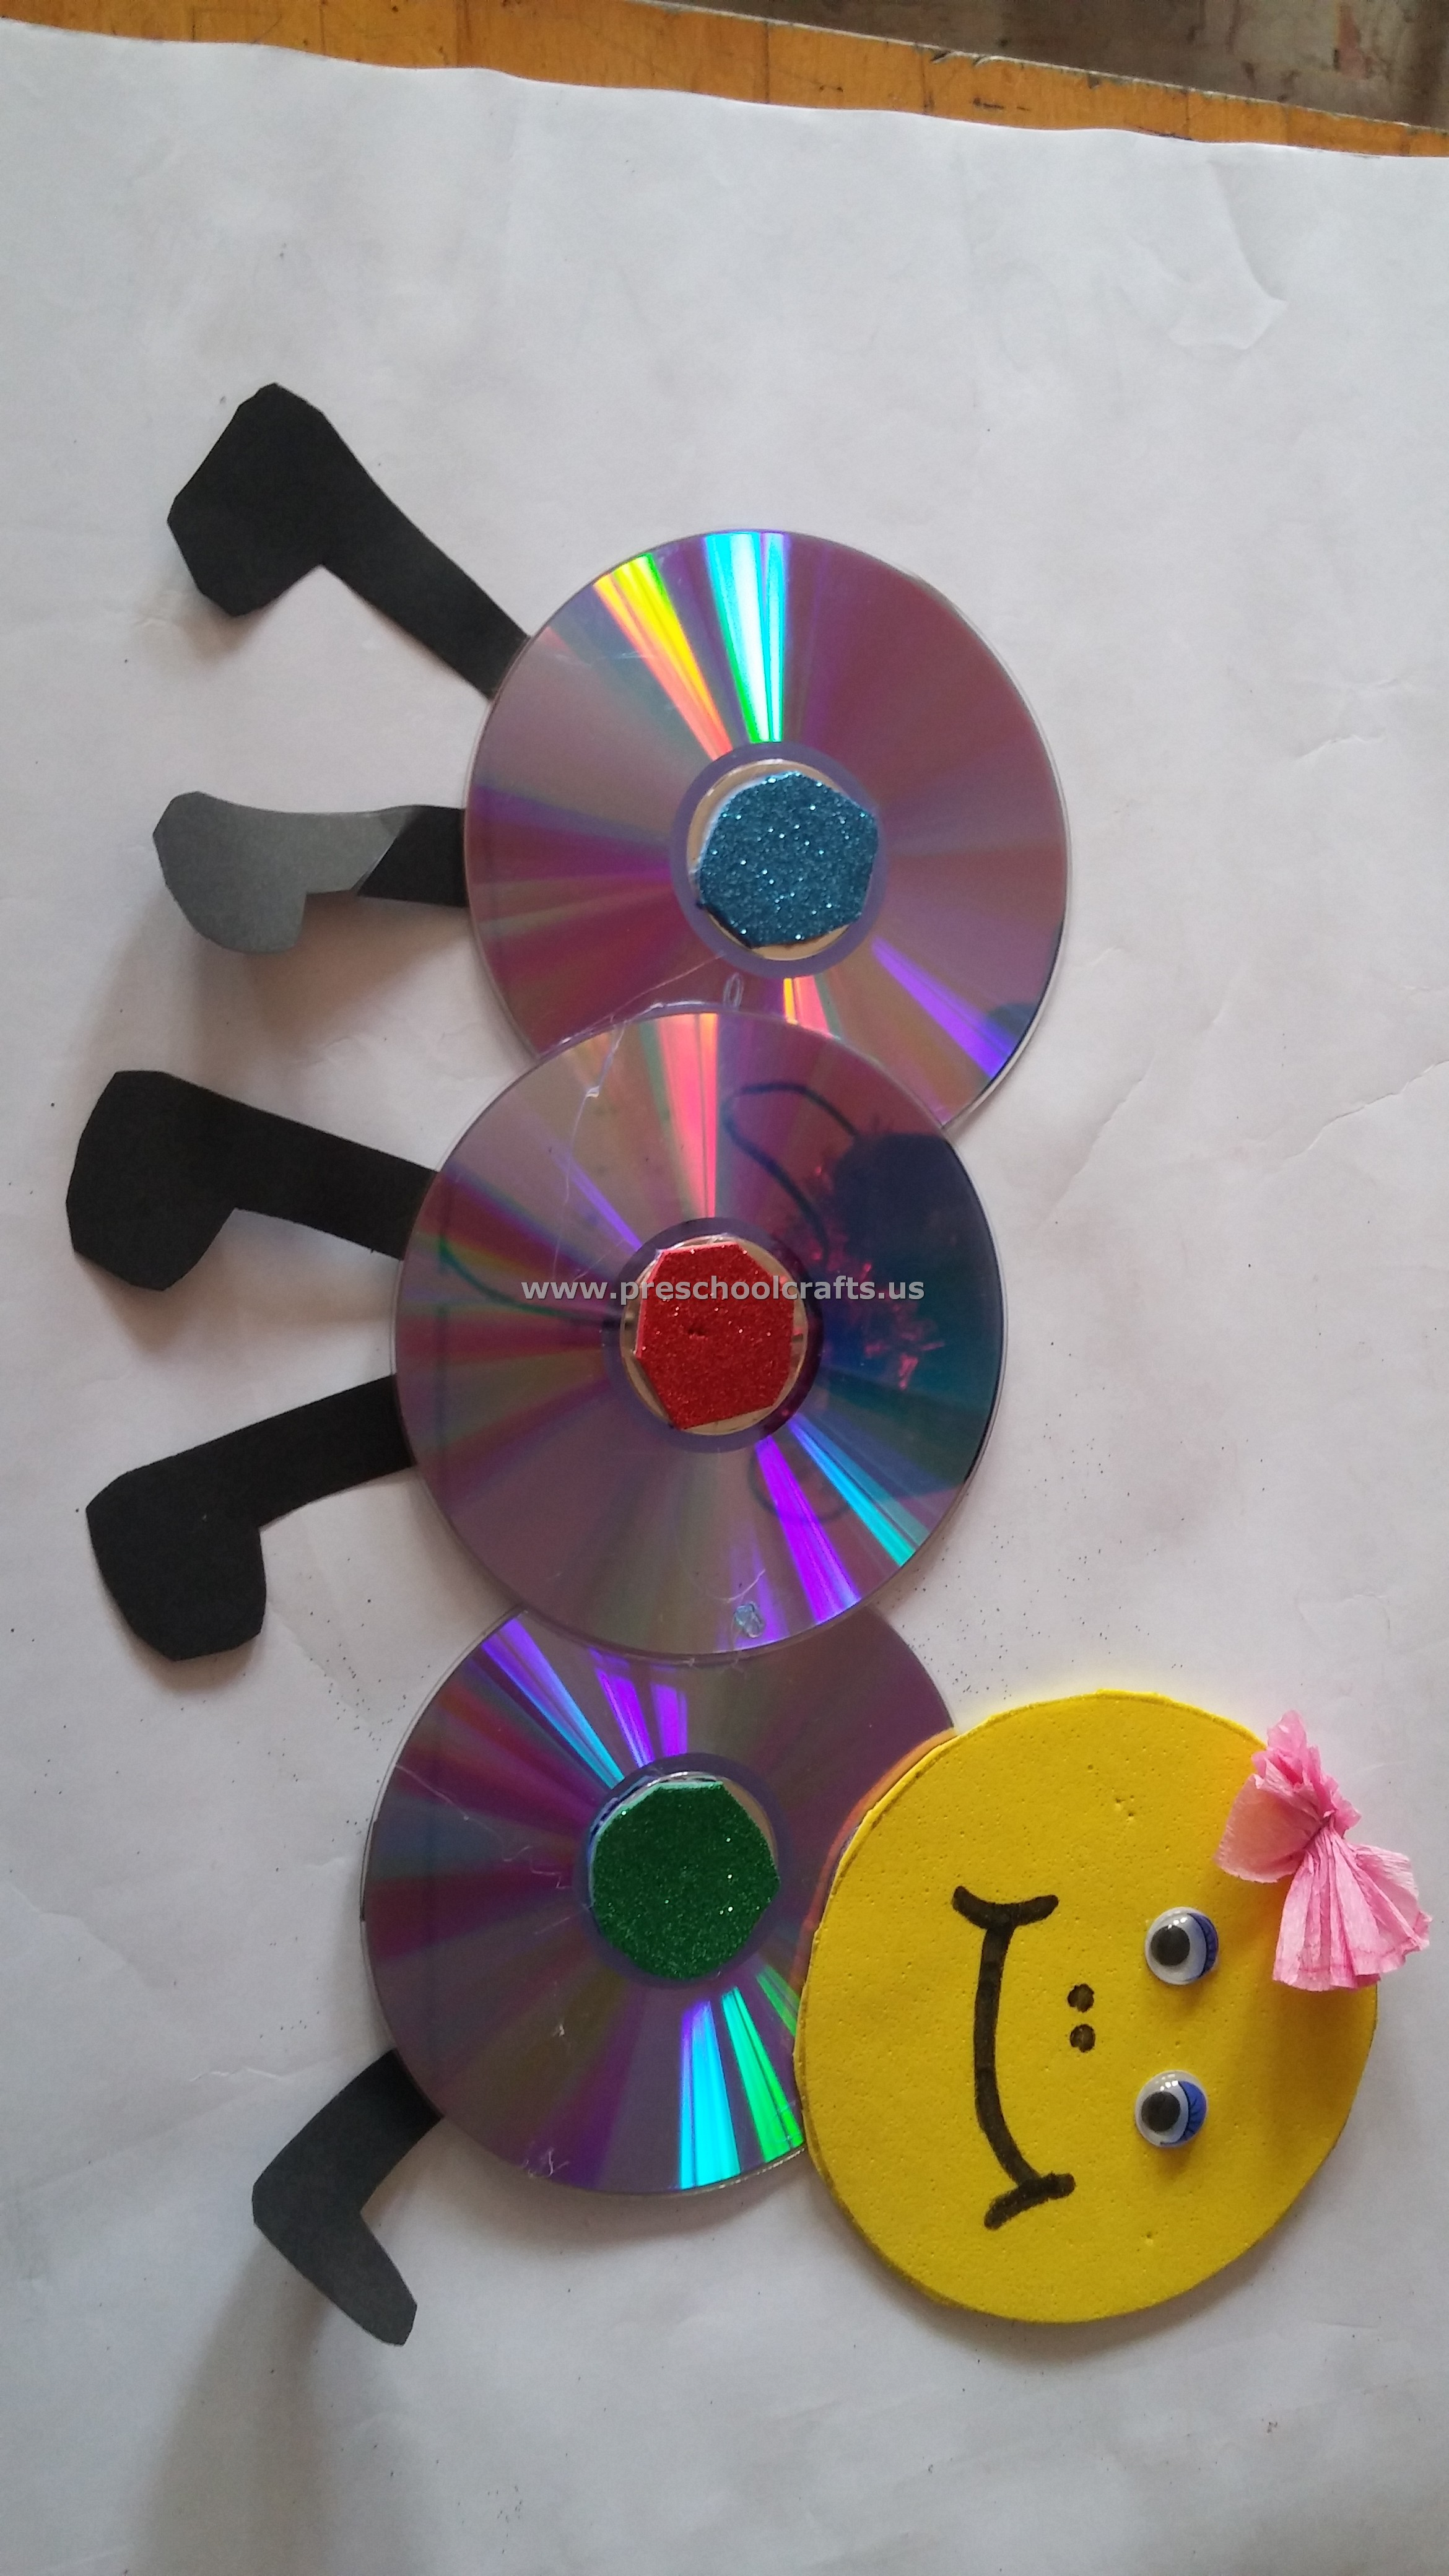 Cd Crafts Ideas For Kids And Preschoolers